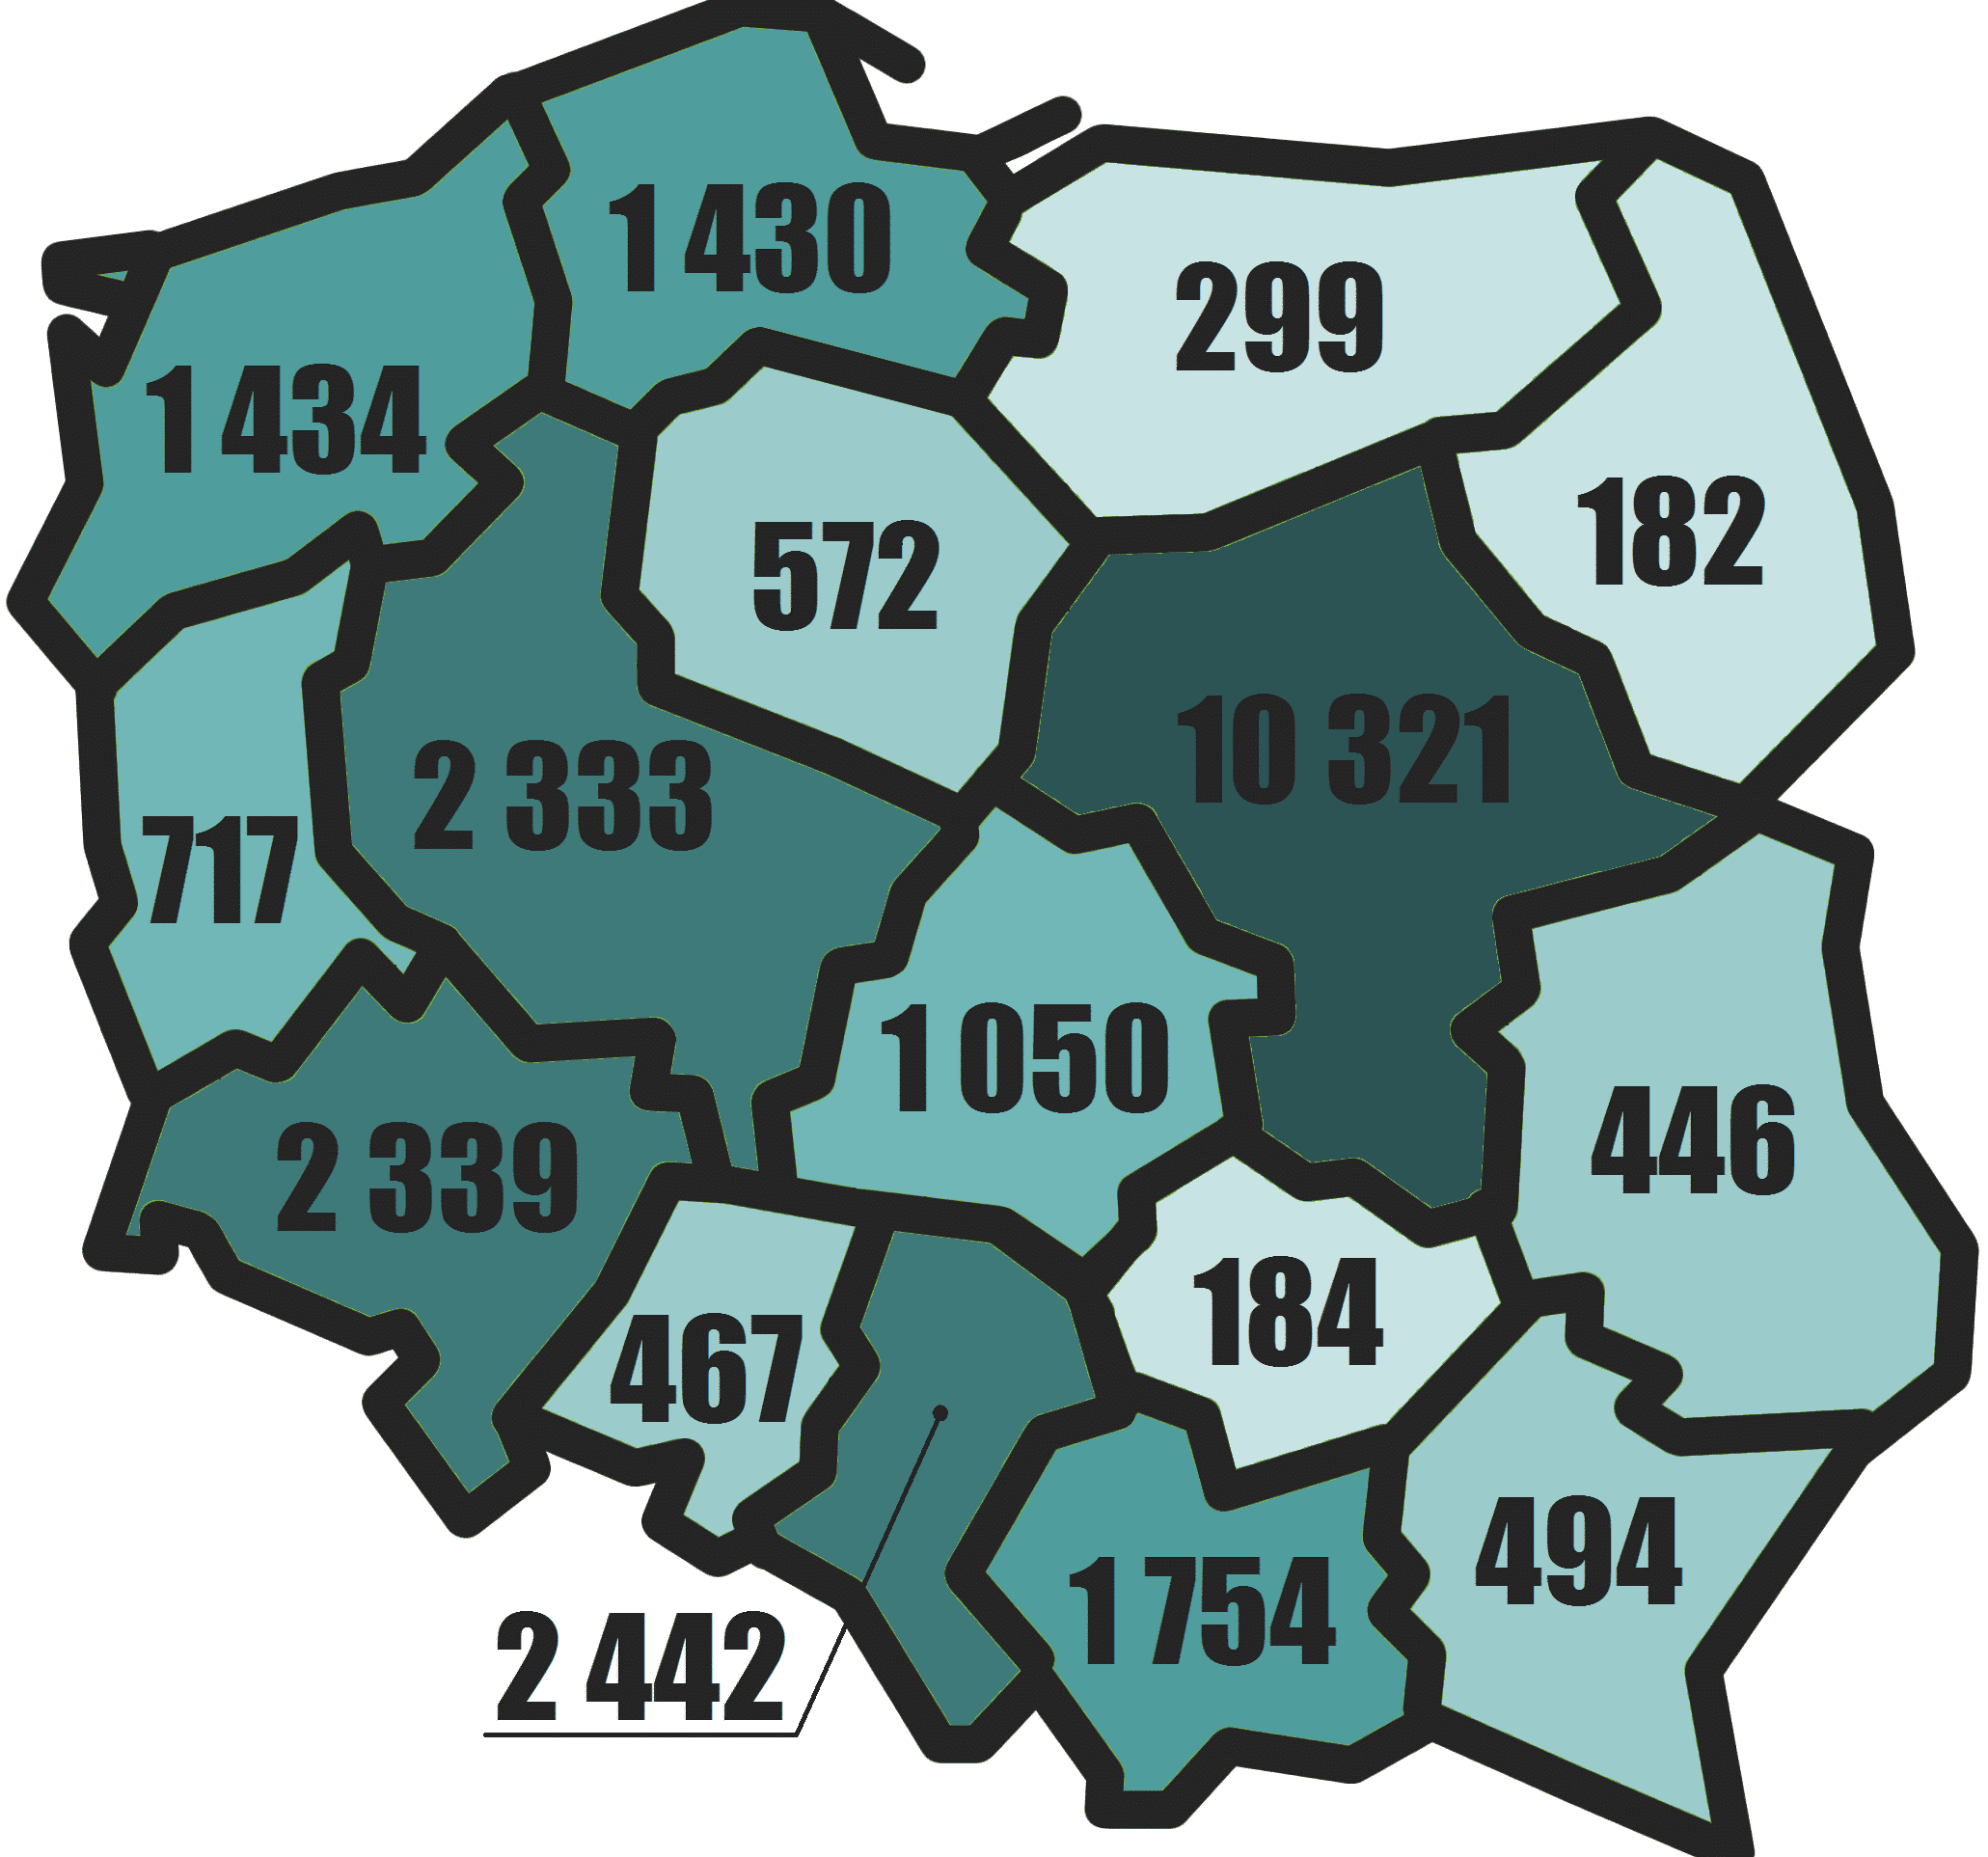 The number of entities with foreign capital in Poland in 2014 by voivodeships